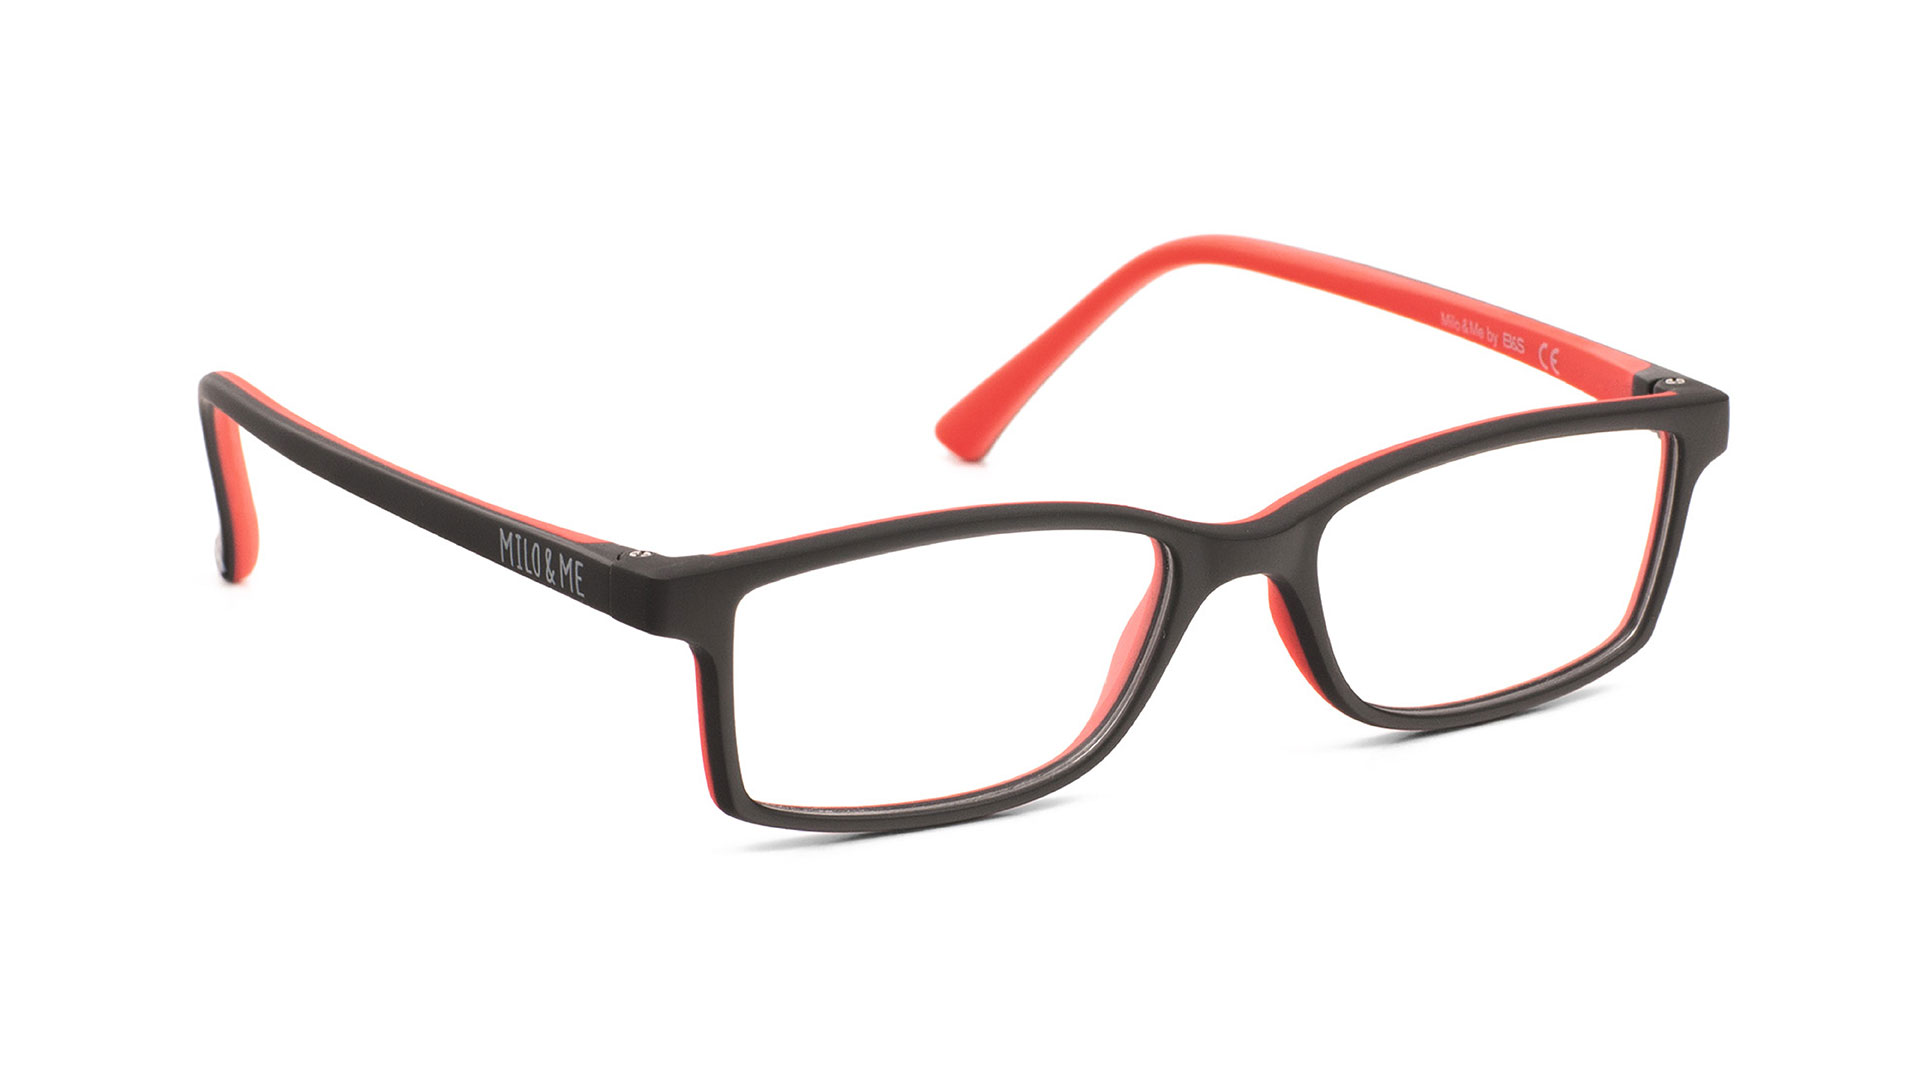 BlackRed H85011-13 - Milo & Me Eyewear - Optimum RX Lens Specialists